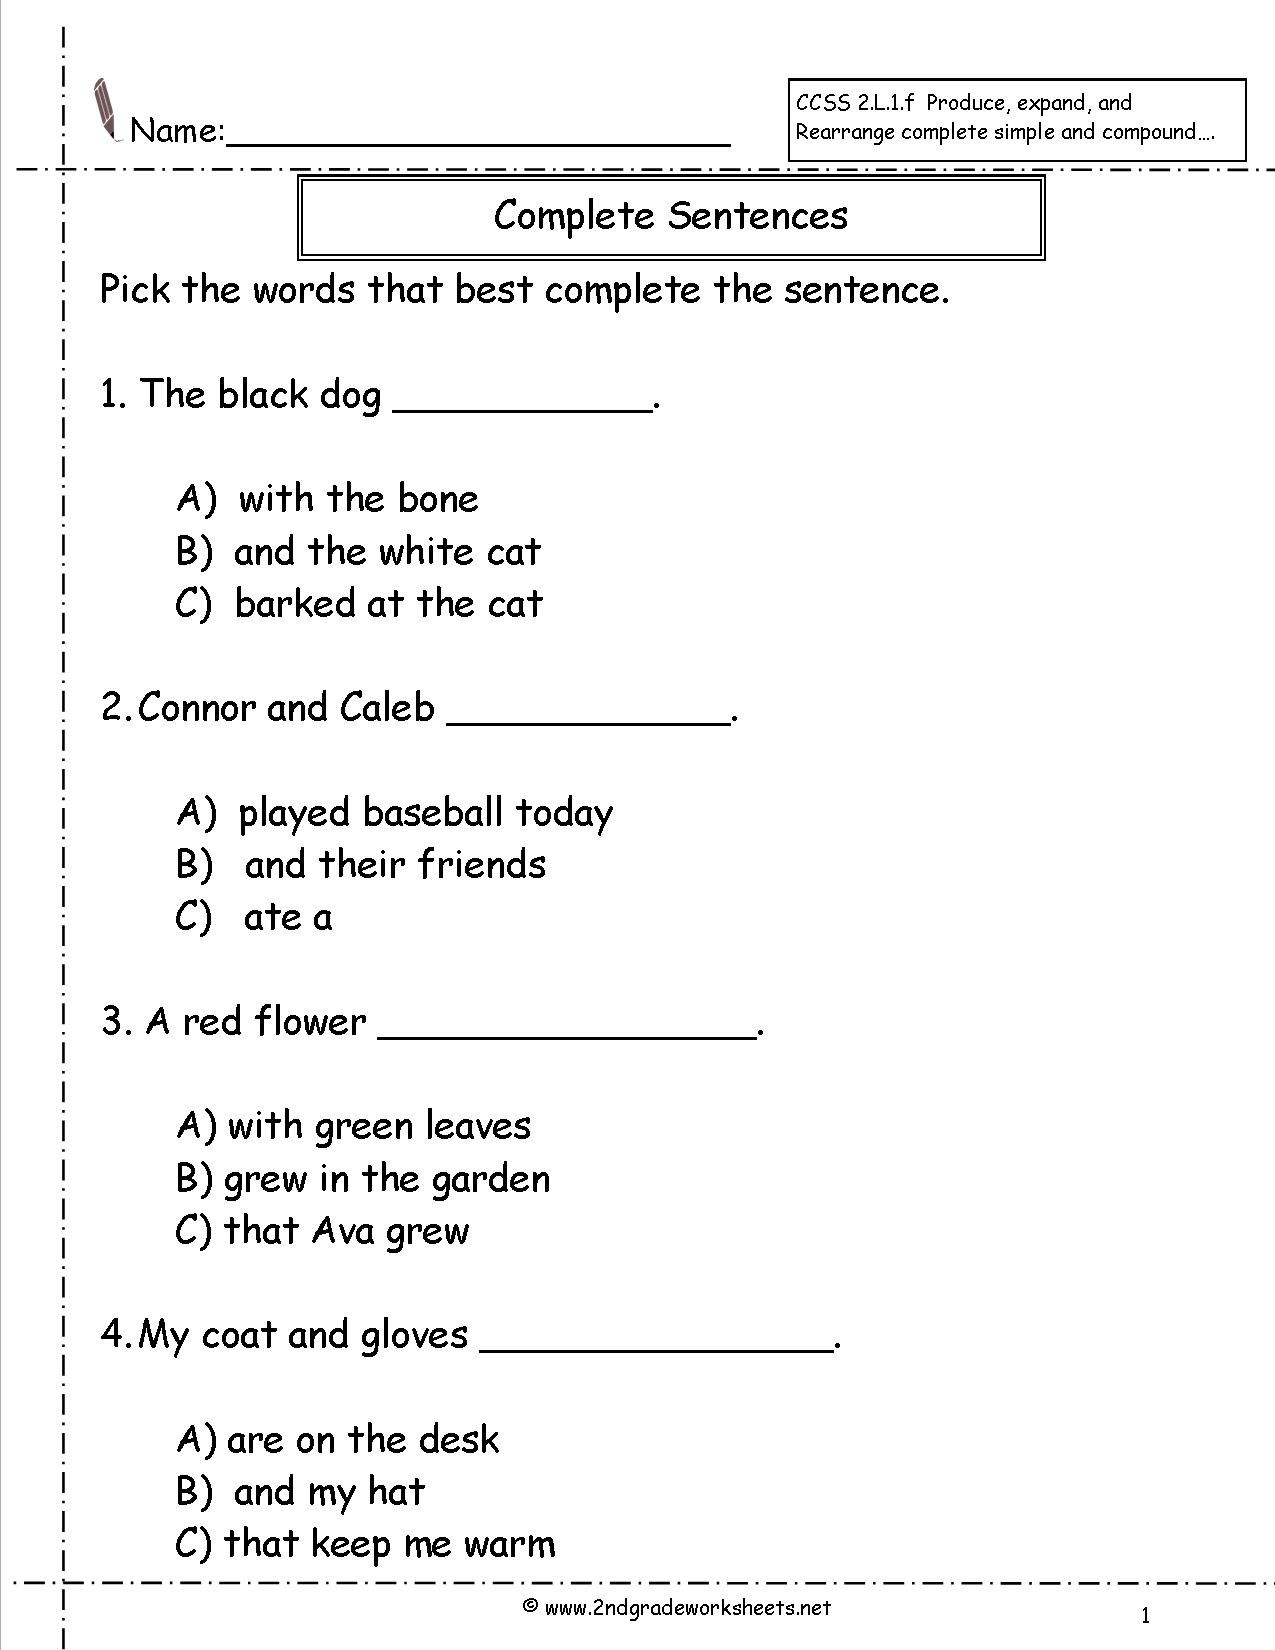 Complete Sentence Worksheets 4th Grade Second Grade Sentences Worksheets Ccss 2 L 1 F Worksheets